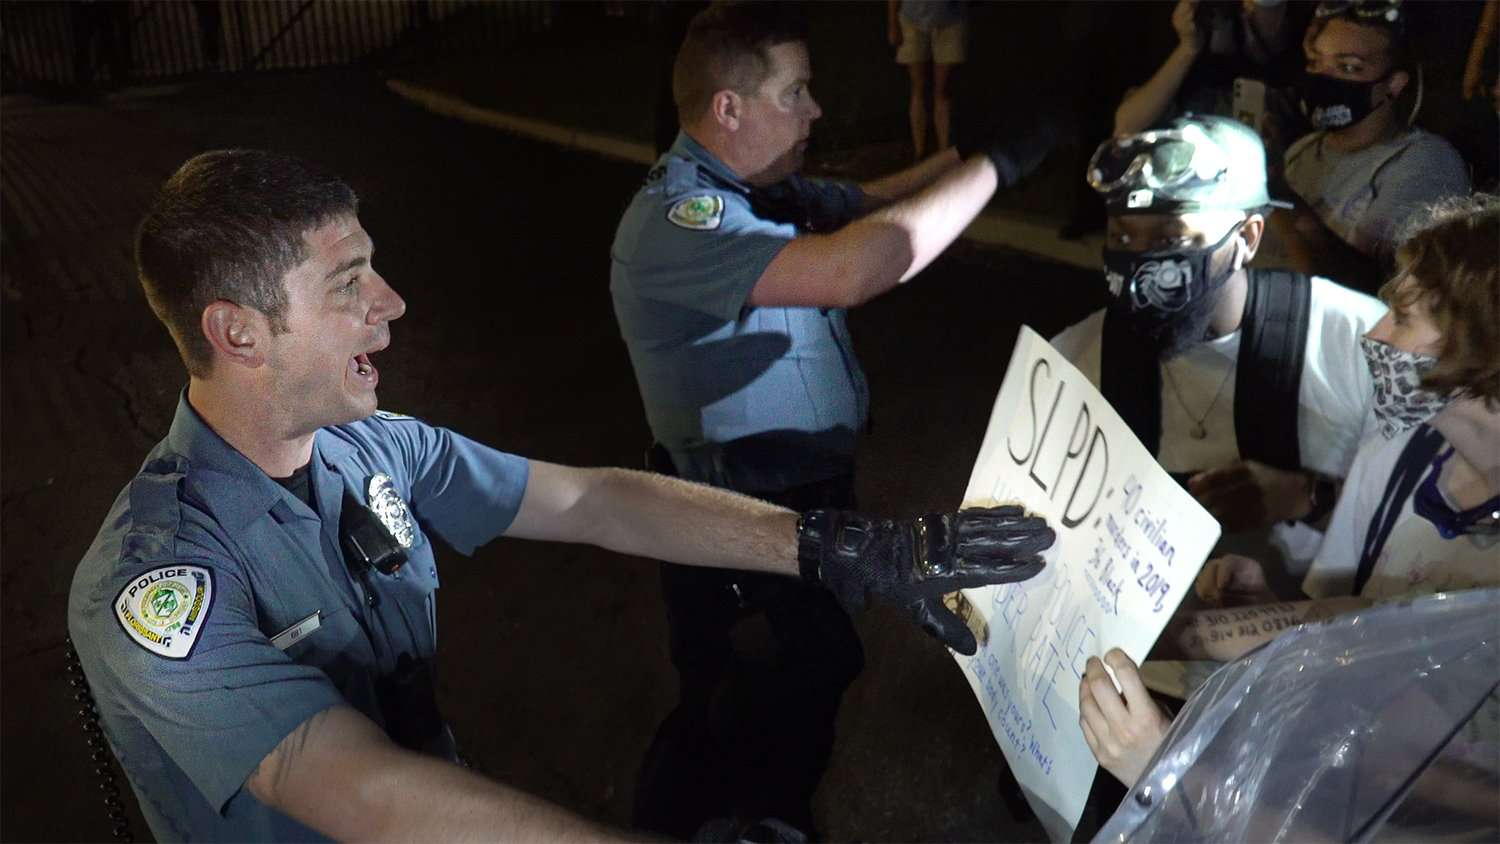 Florissant Police use rush tactics to incite violence